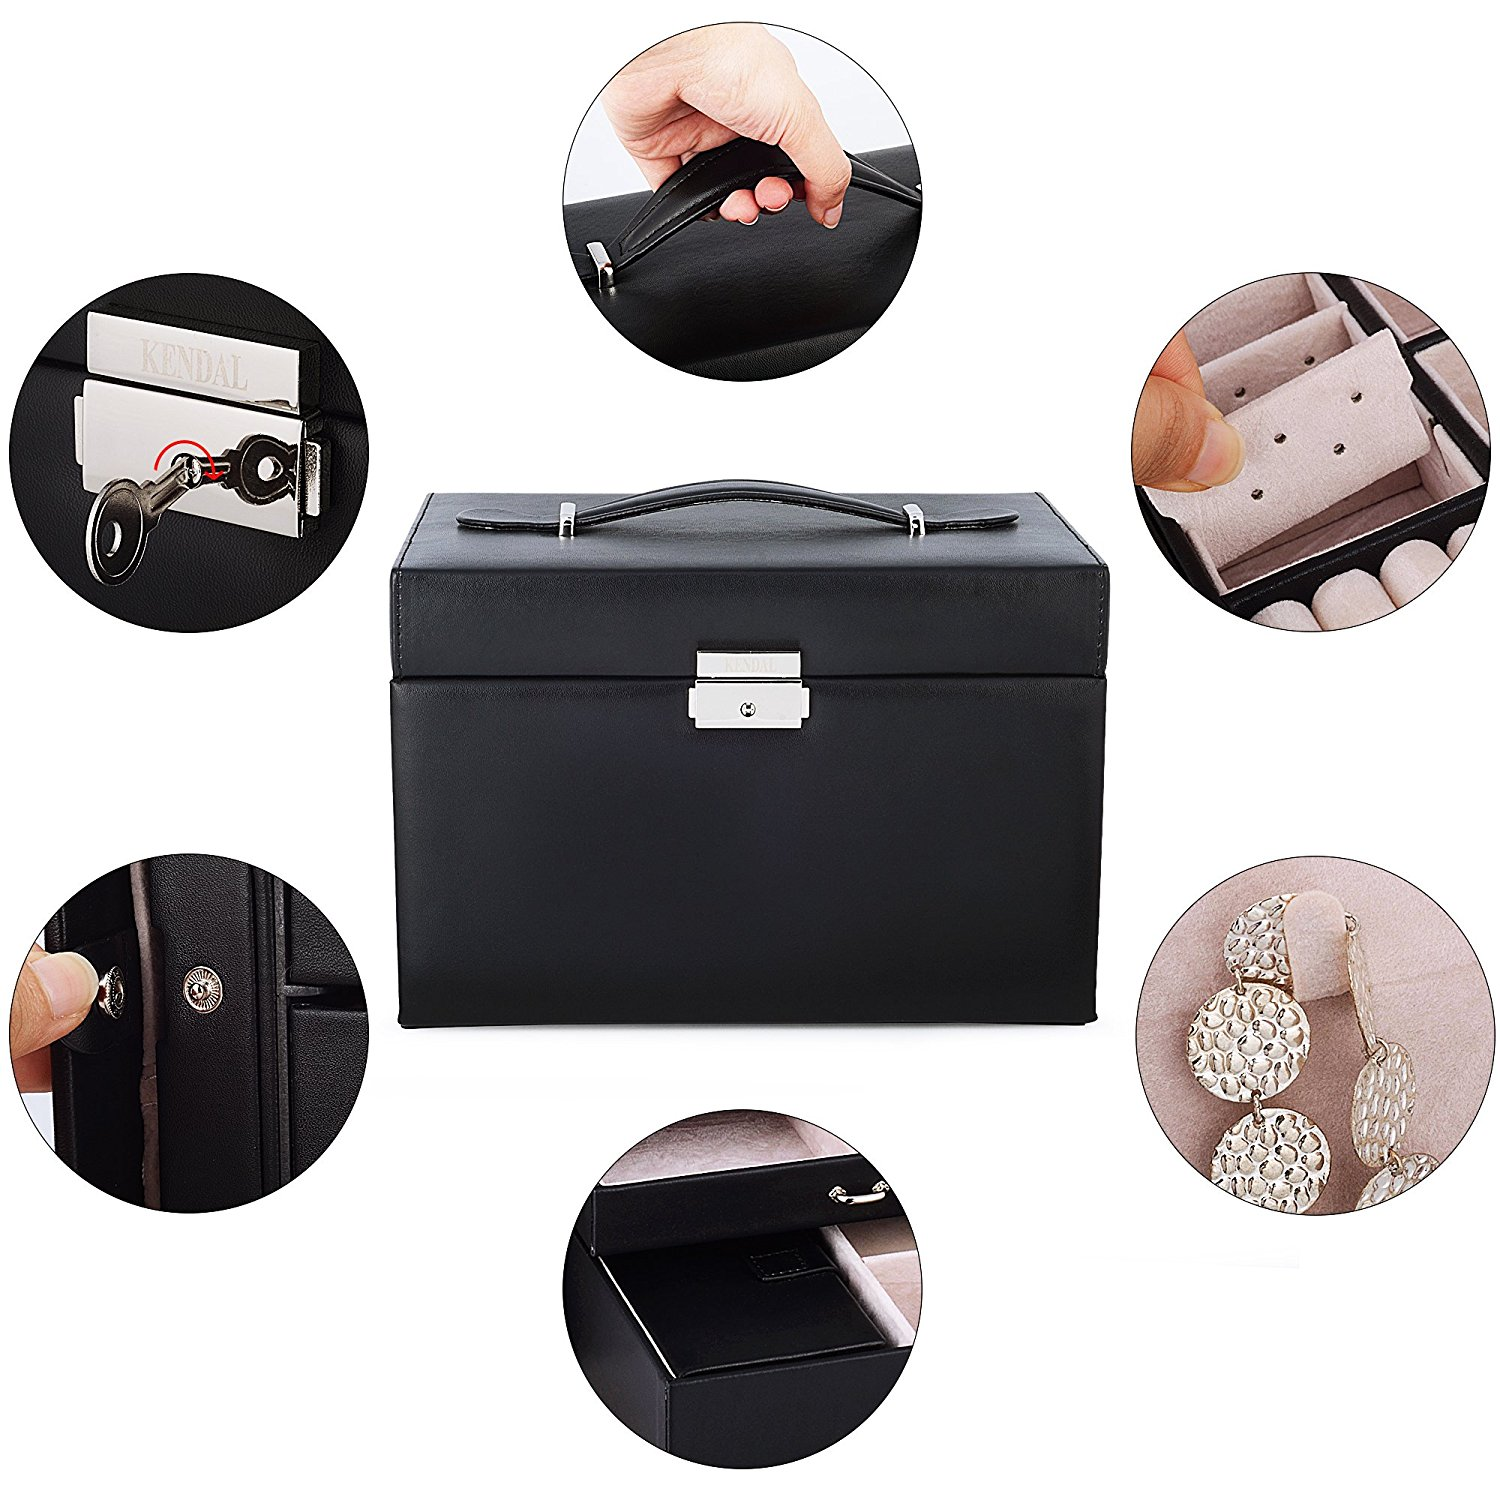 New Shining Image Kendal Black Leather Jewelry Box Case Storage Tote Green Organizer With Travel And Lock